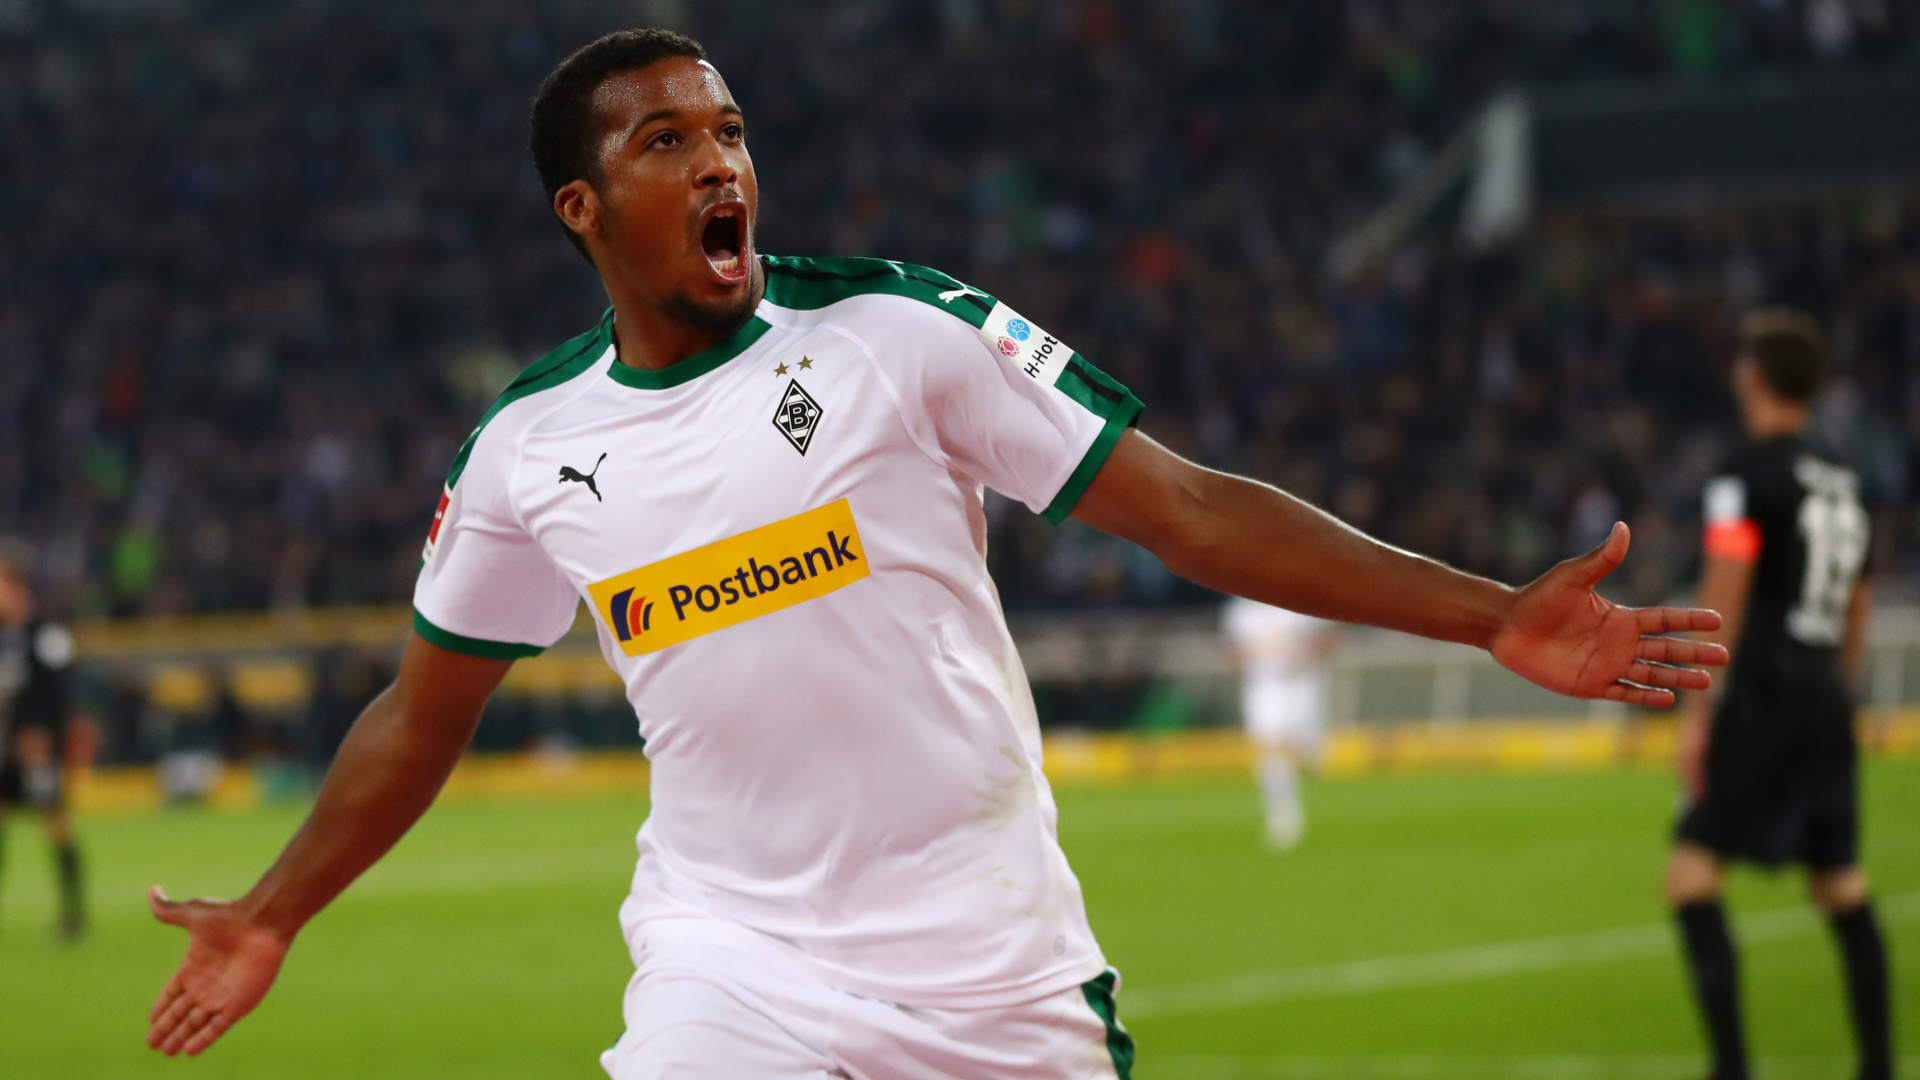 Betting Tips for Today: Goals galore once more in Monchengladbach